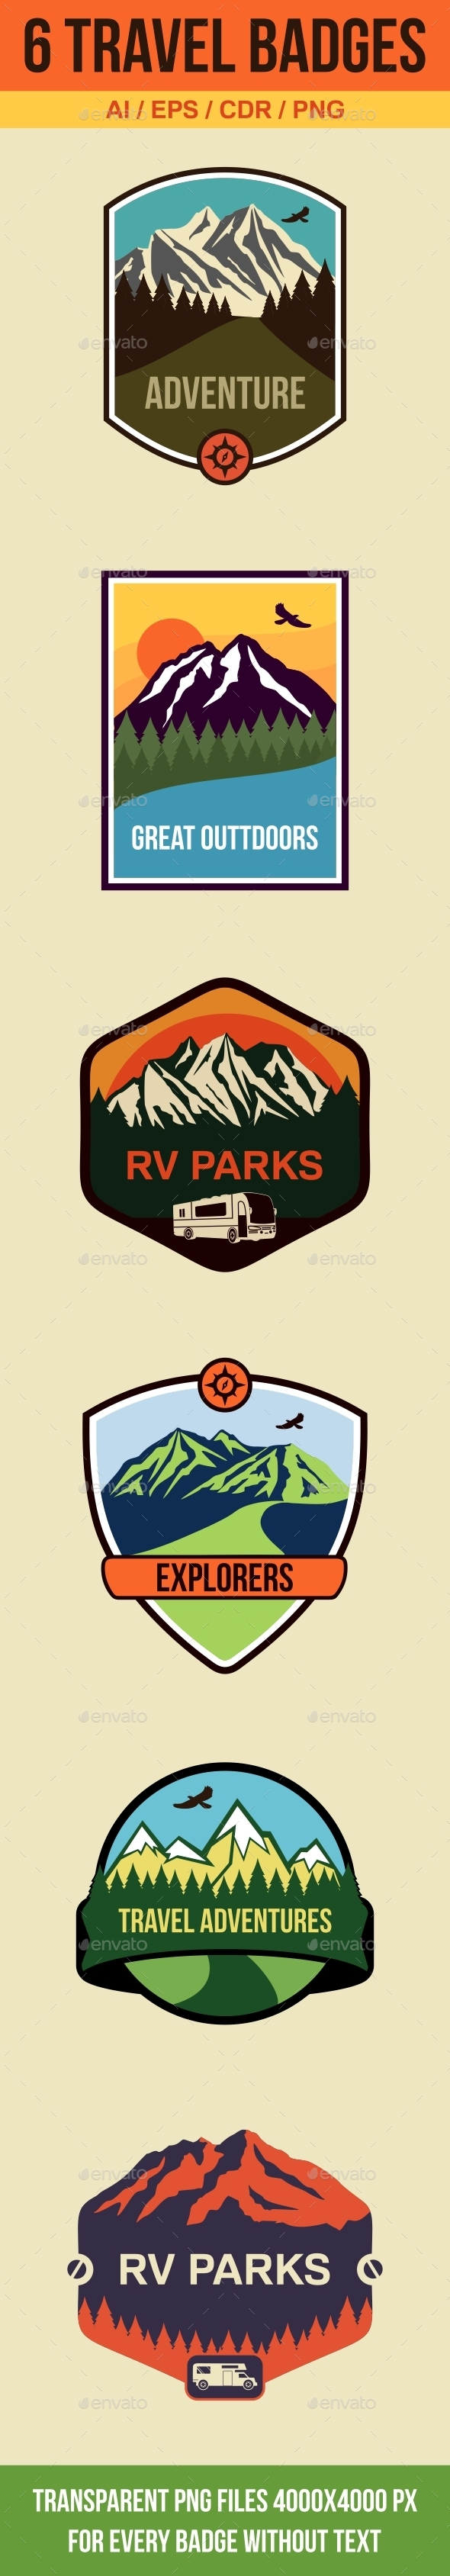 6 Travel Badges and Emblems - Travel Conceptual